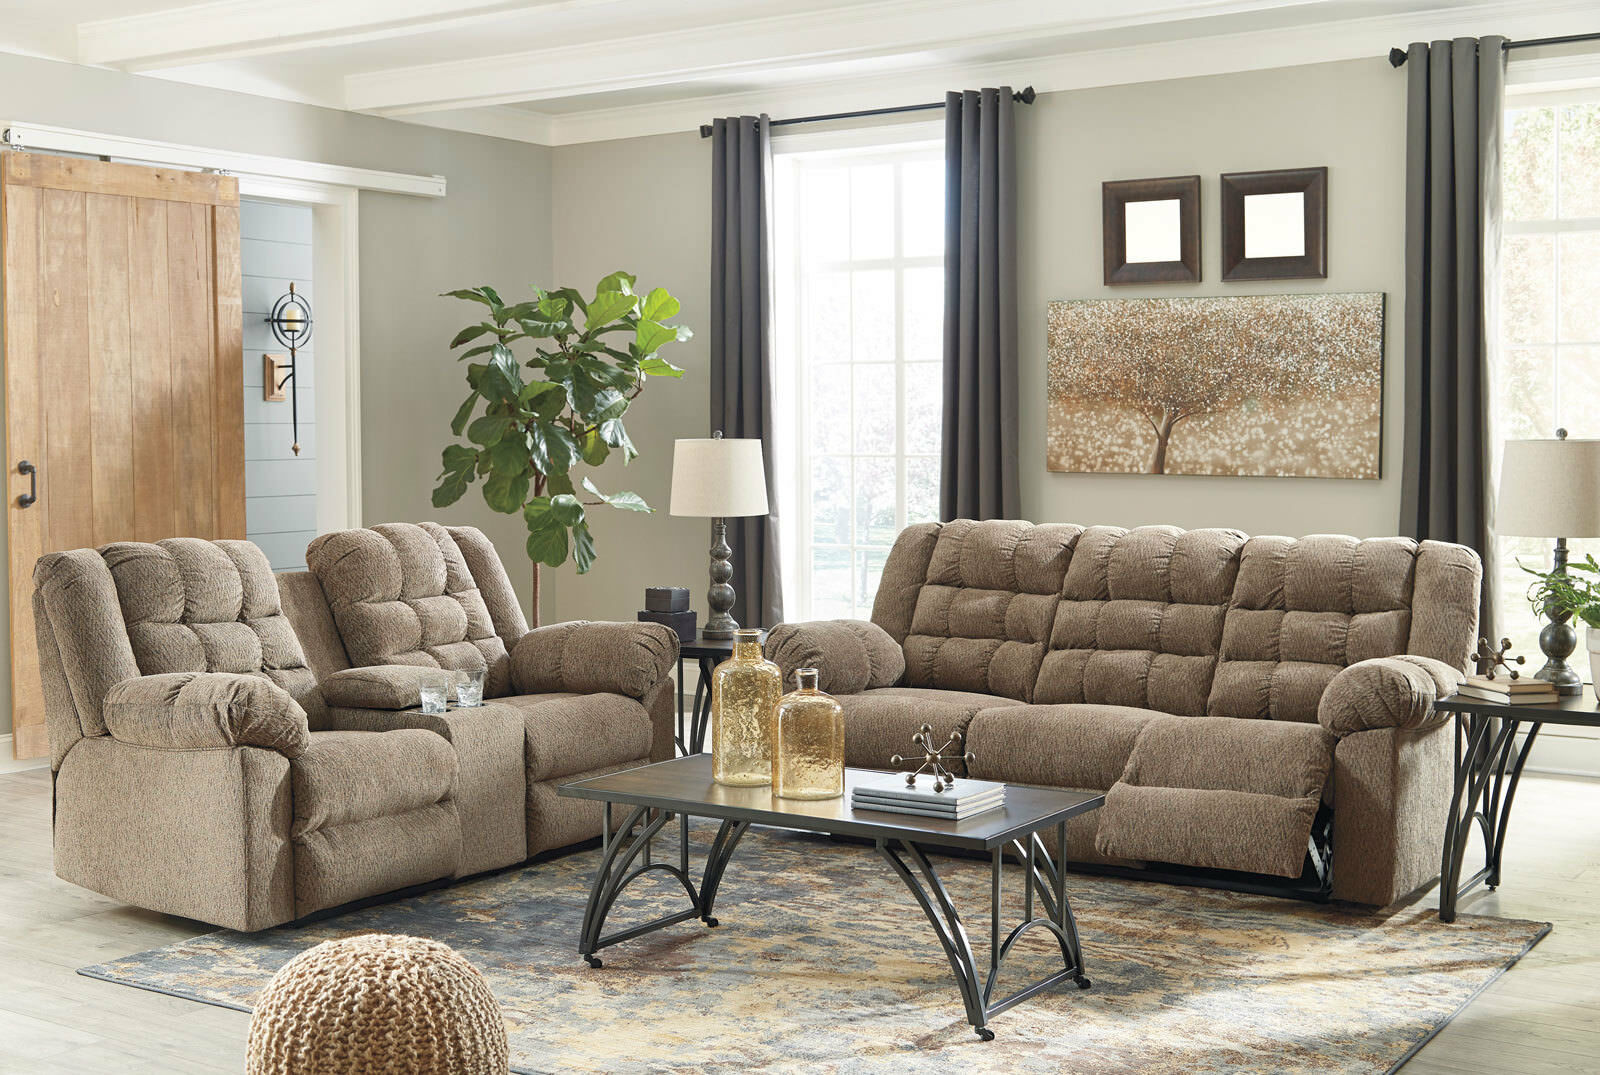 New miller living room furniture brown fabric reclining - Fabric reclining living room sets ...